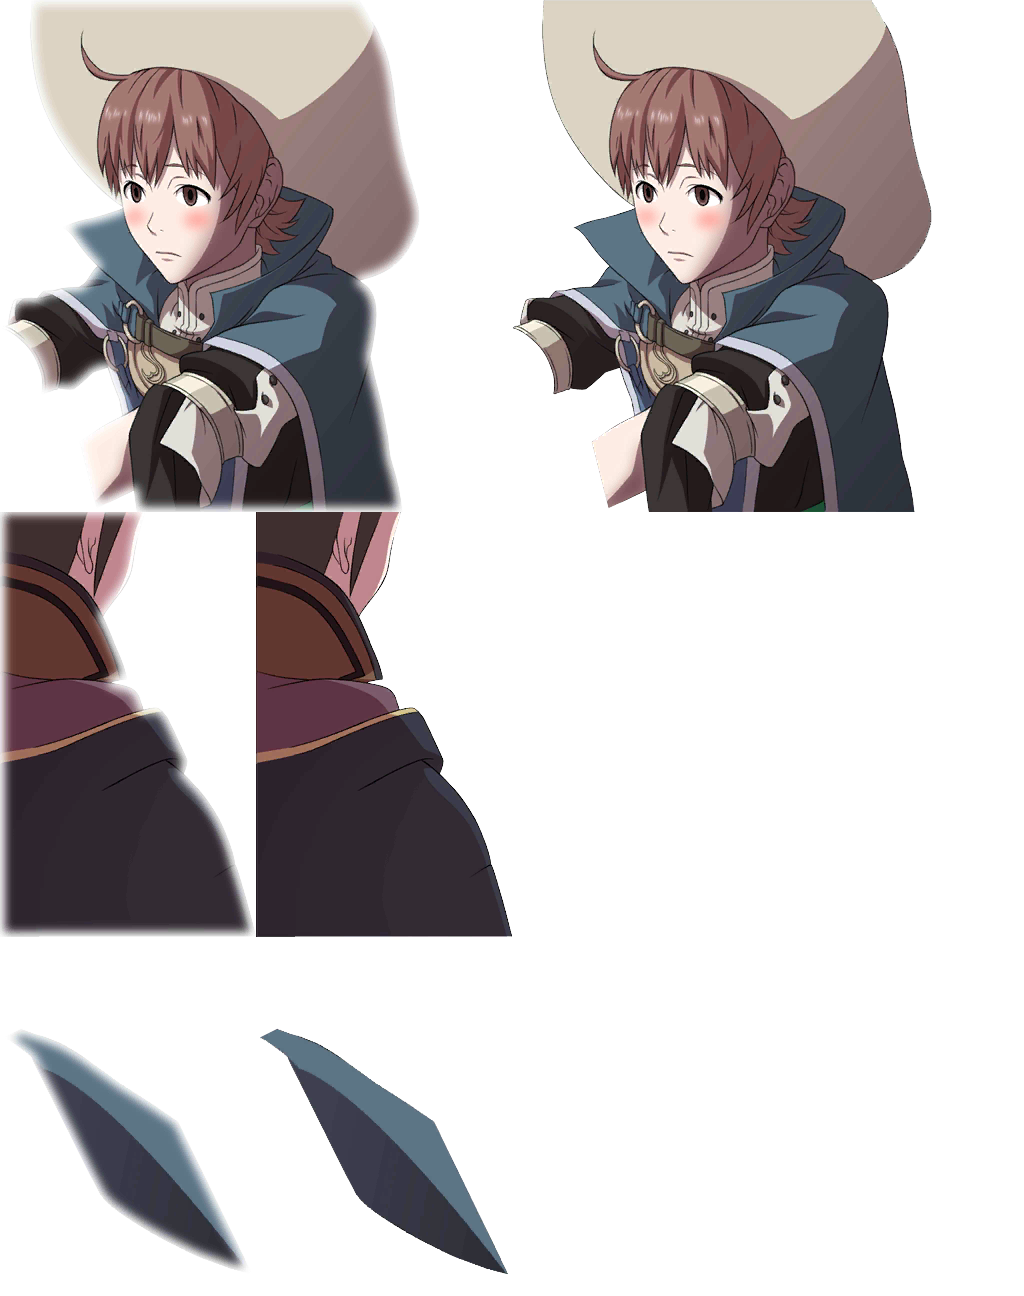 Fire Emblem: Awakening - Ricken's Confession